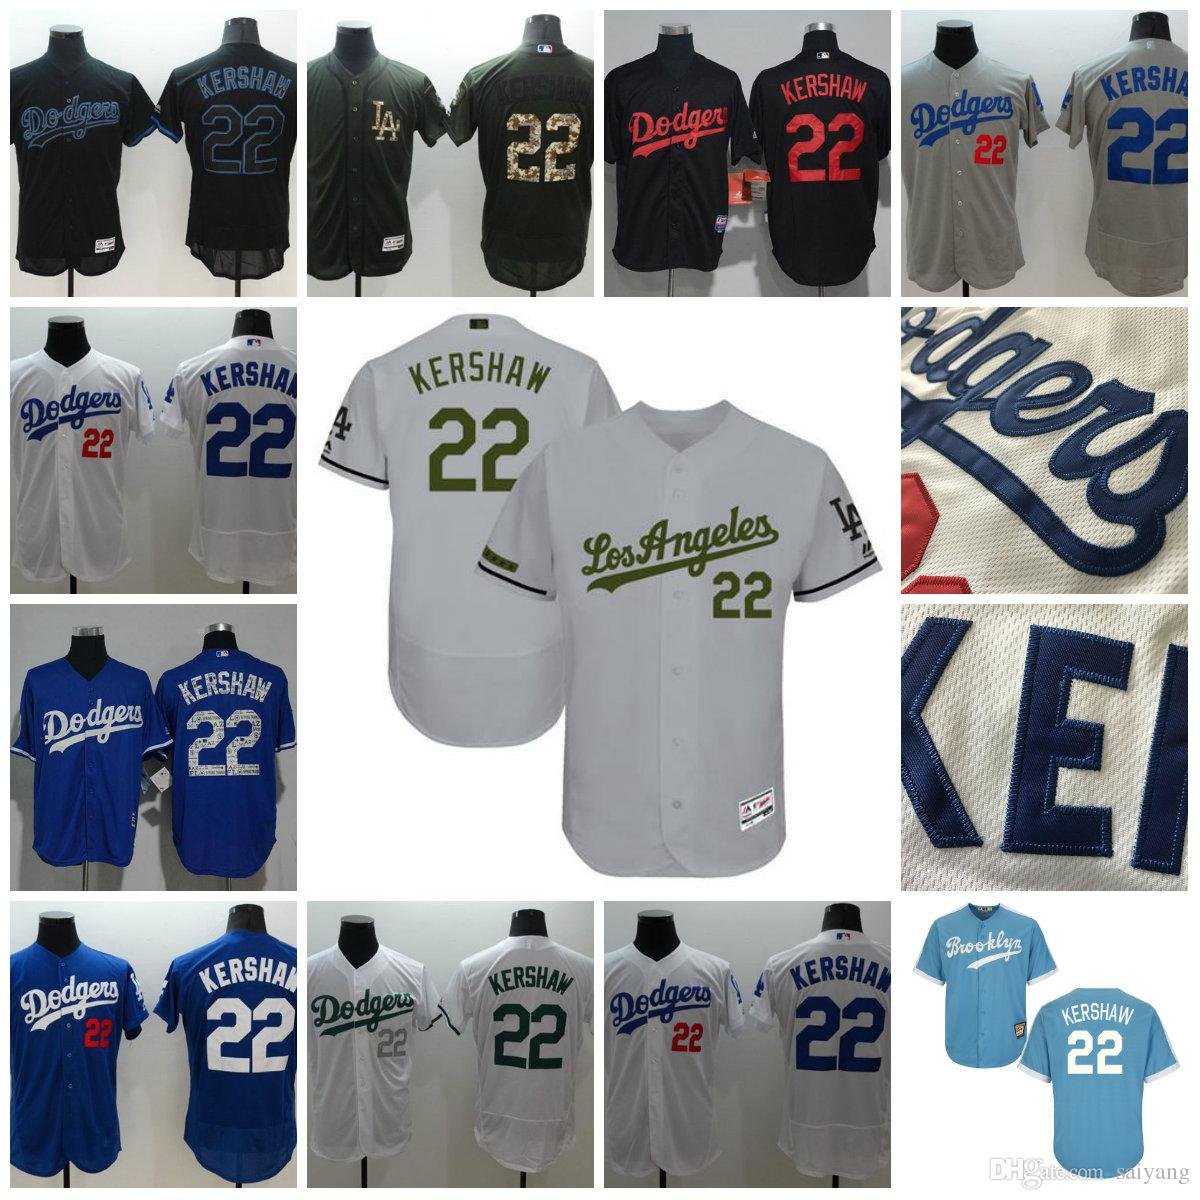 reputable site 966ff 8582a 22 clayton kershaw jersey